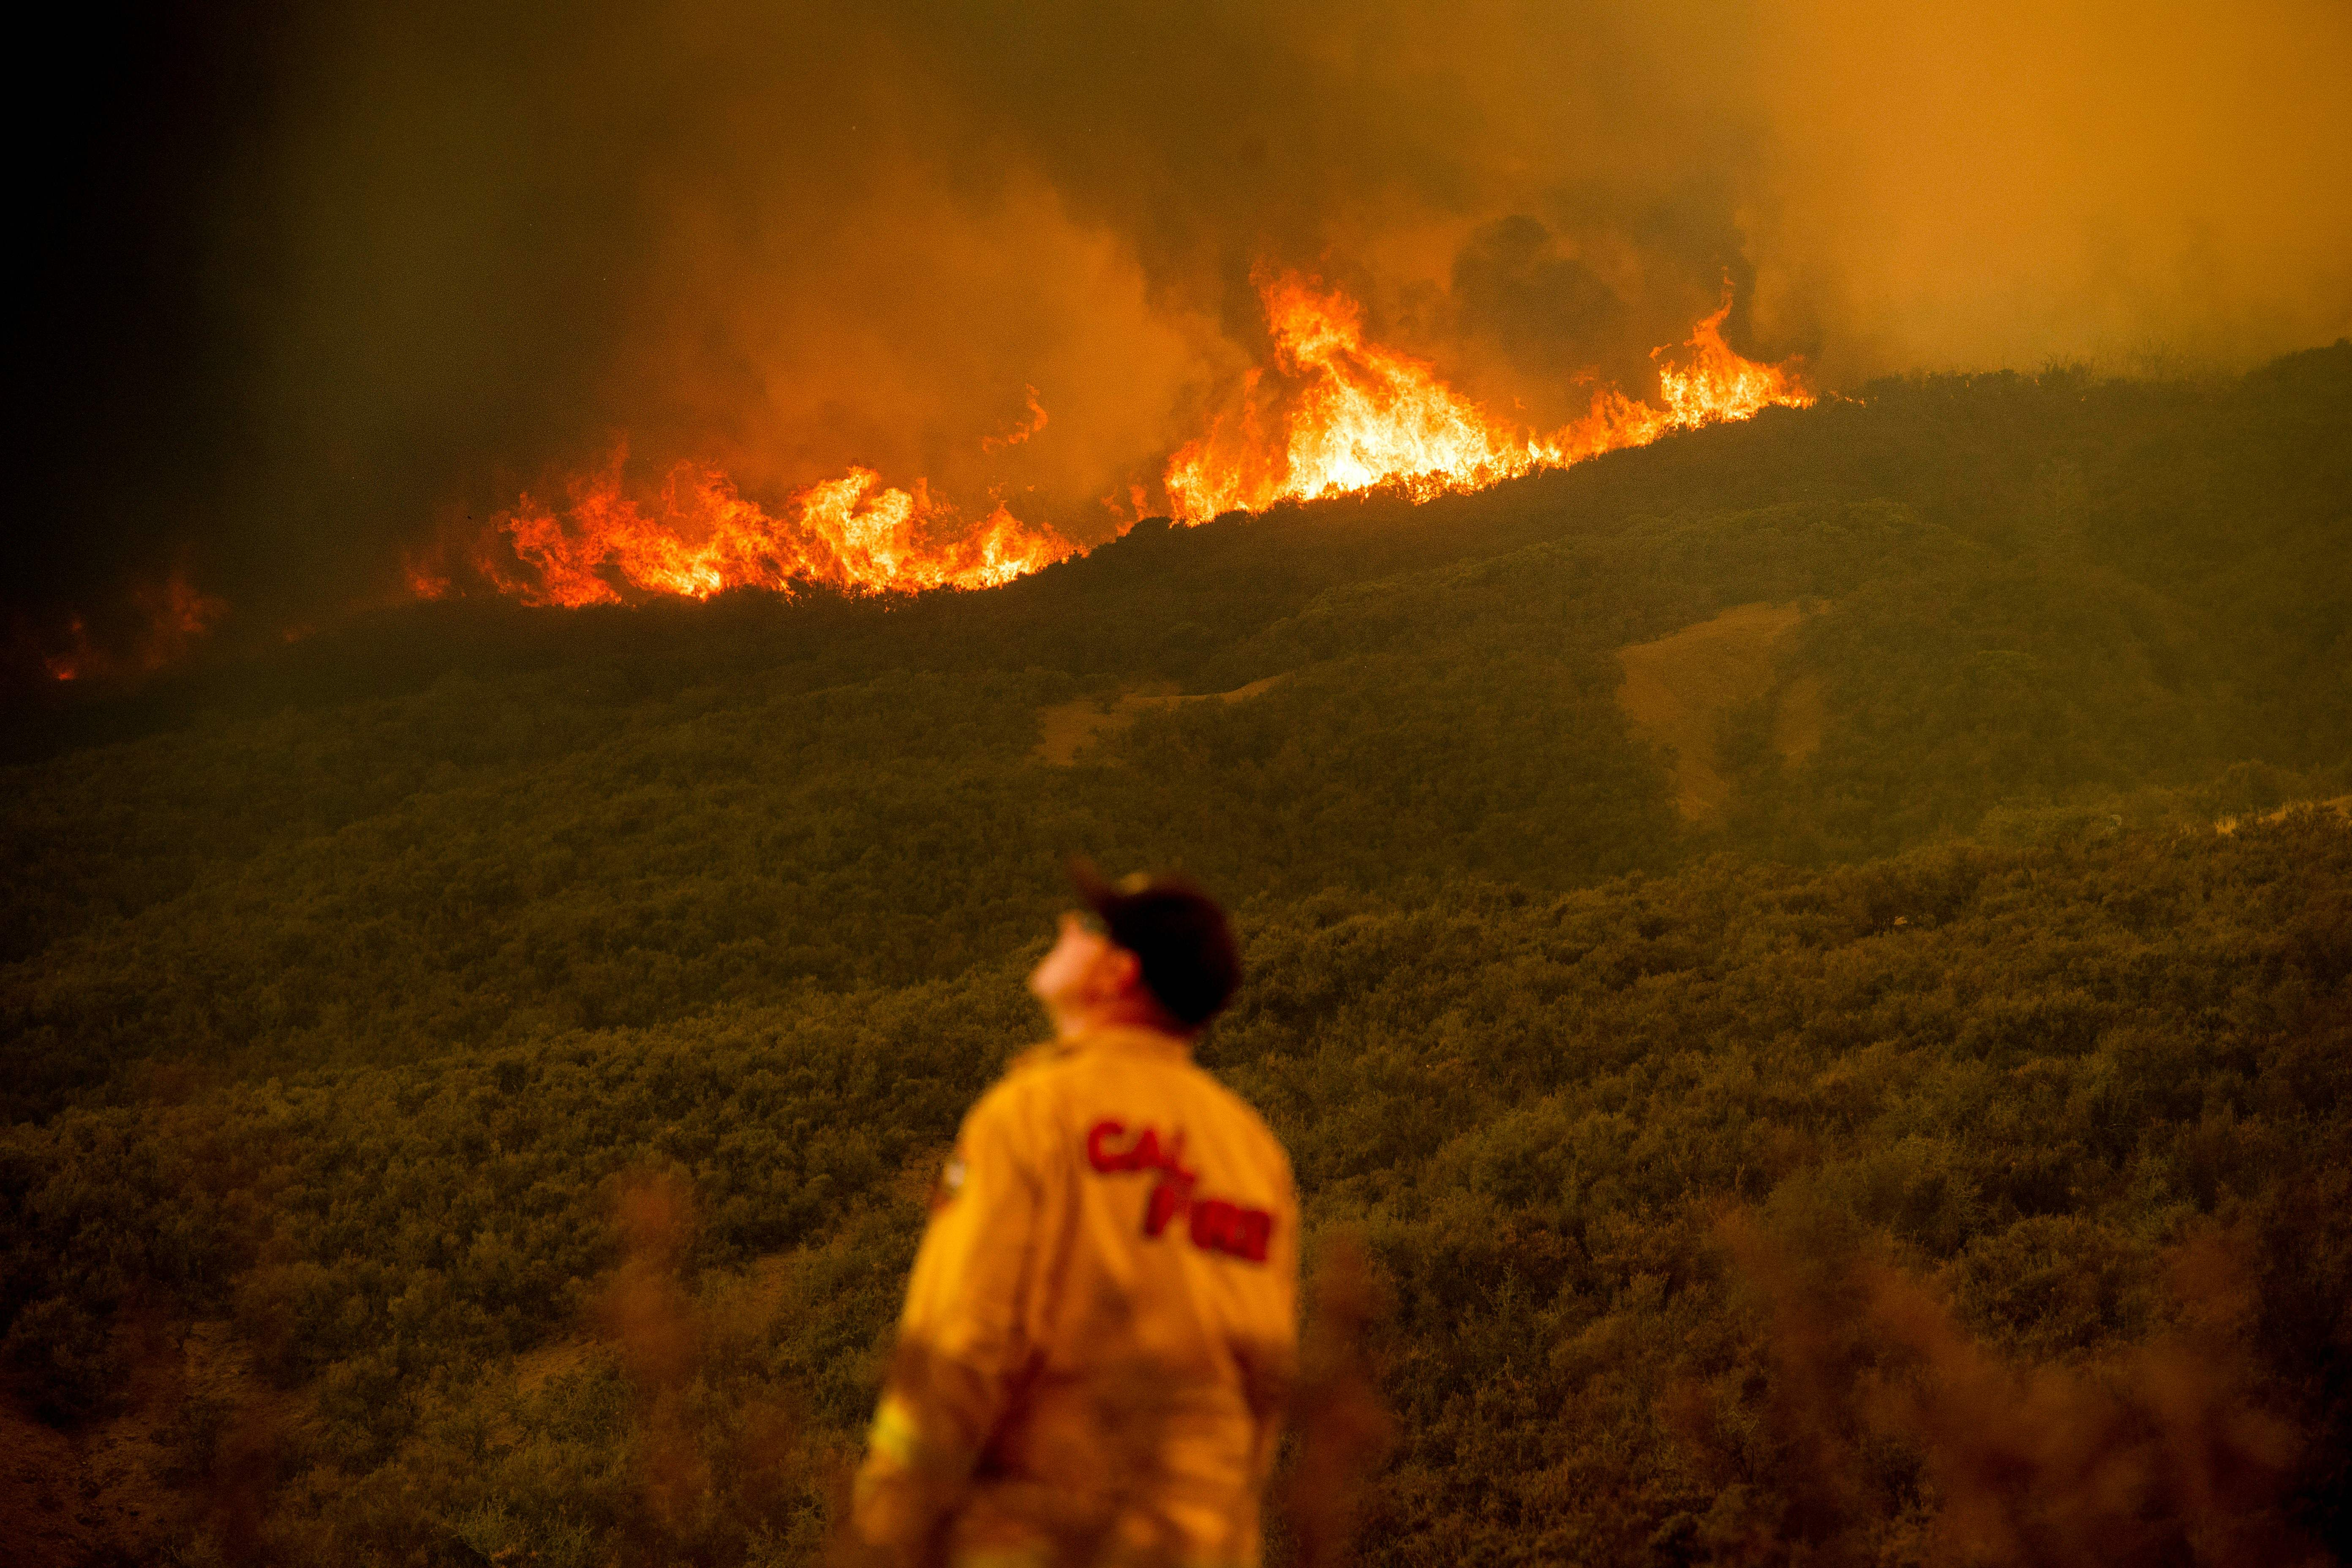 US-ENVIRONMENT-FIRES